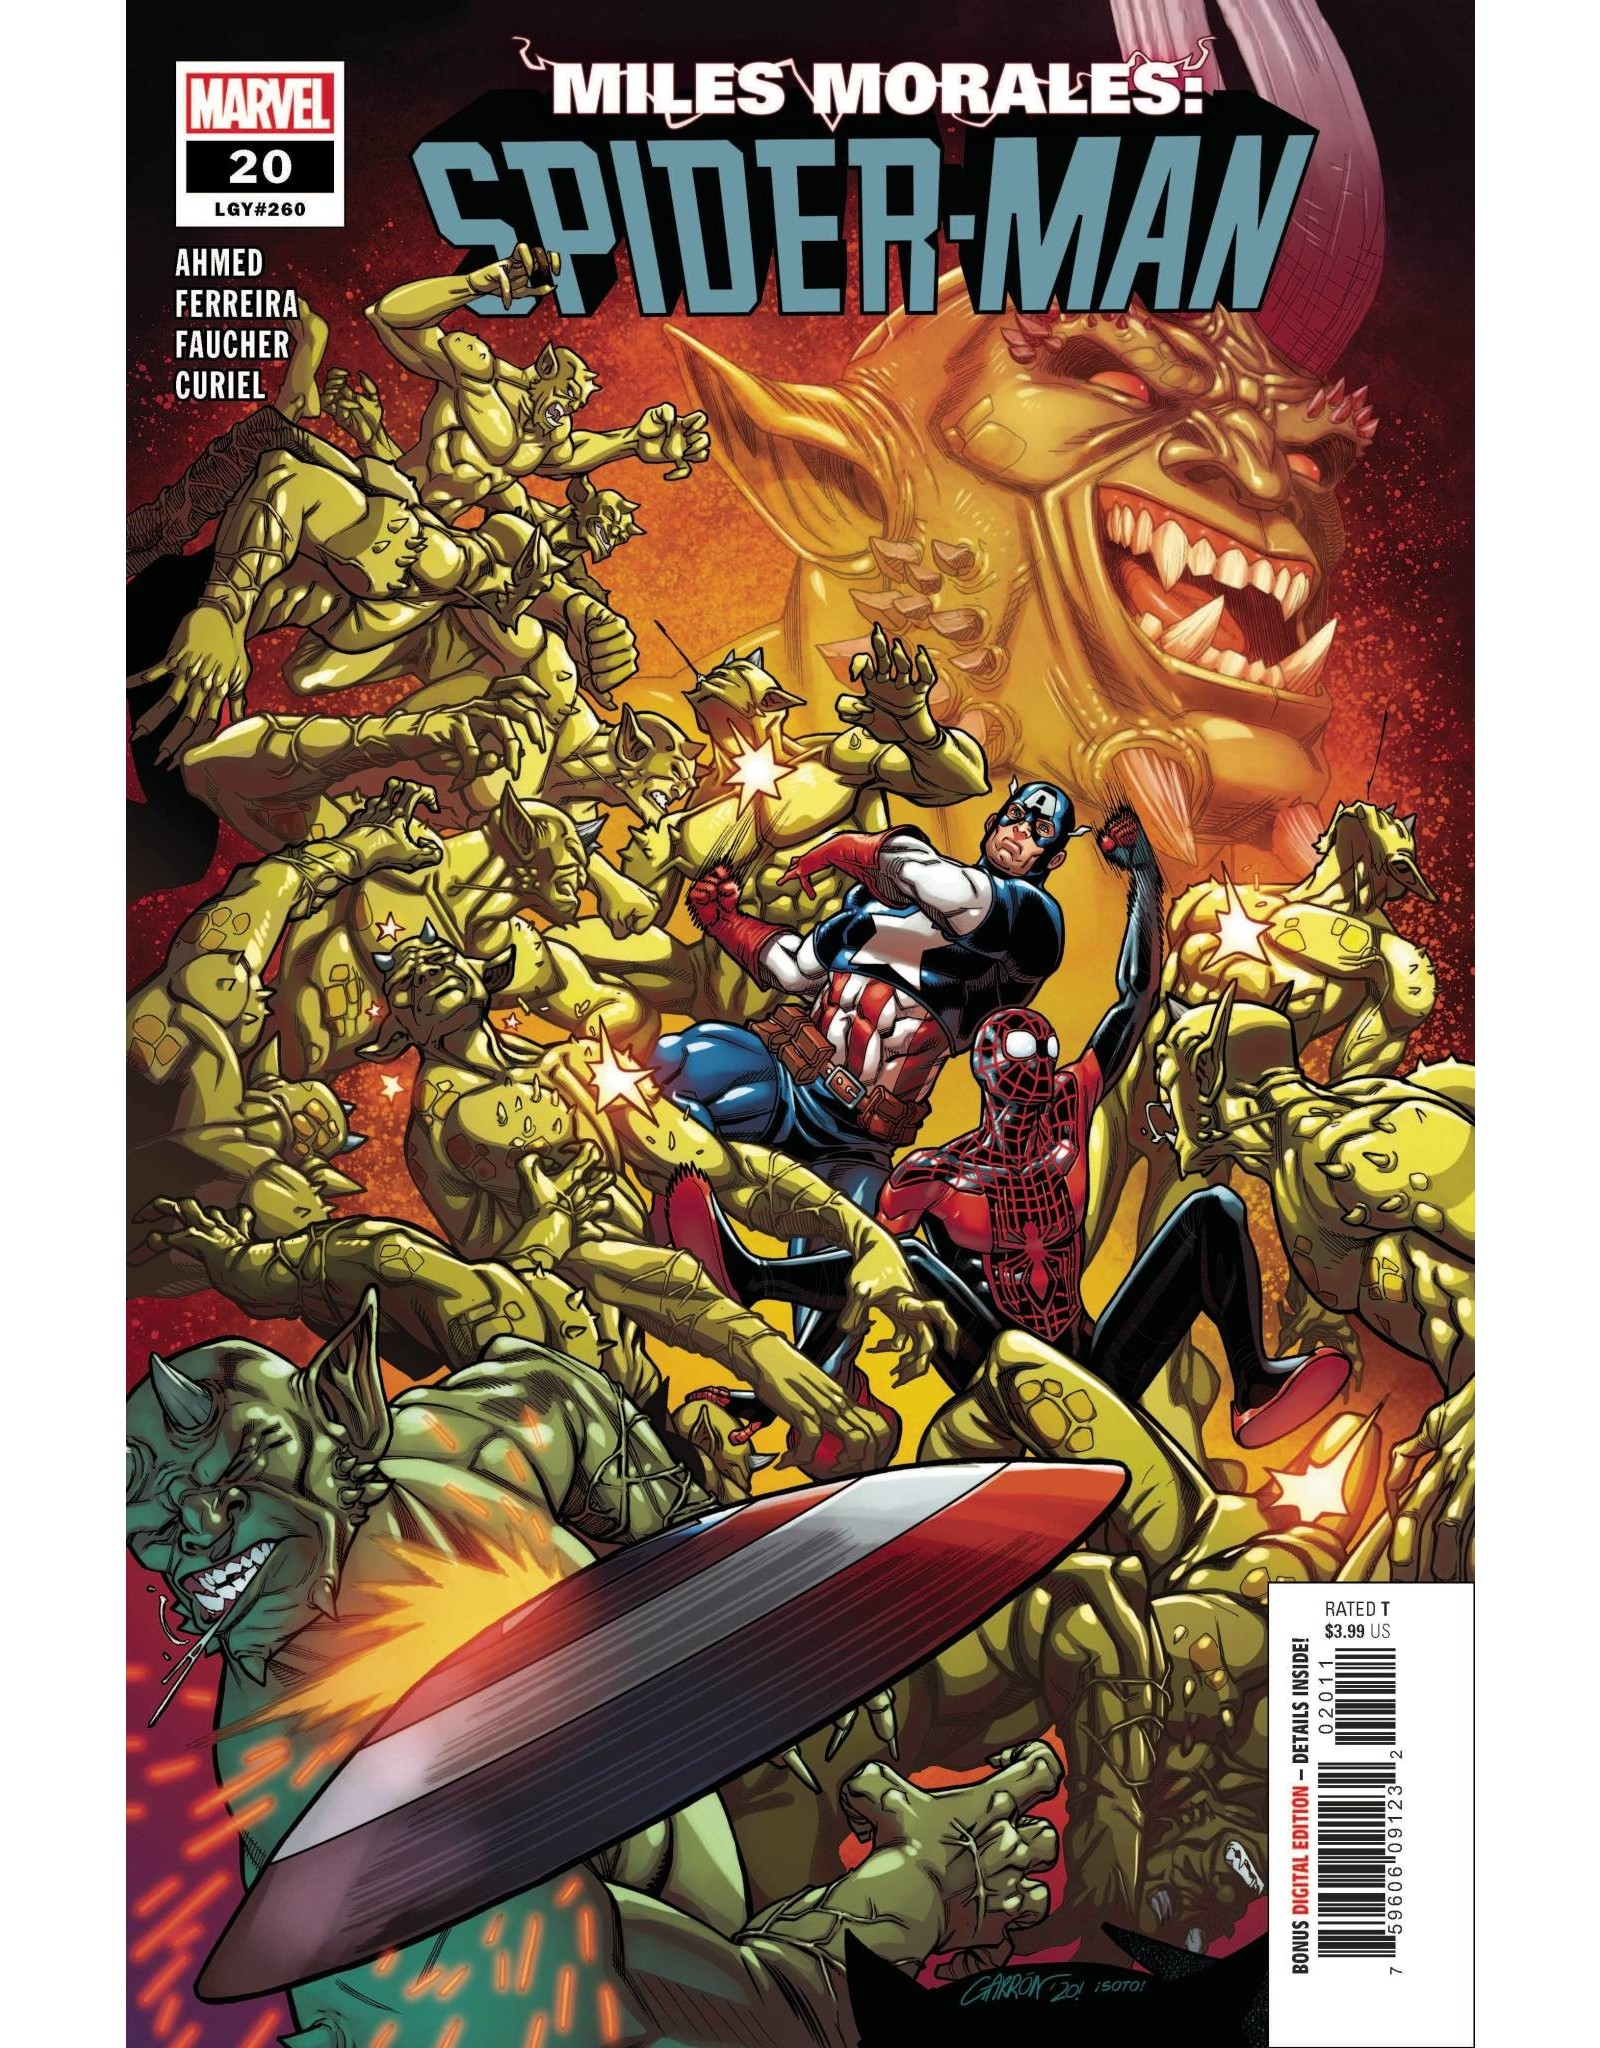 Marvel Comics MILES MORALES SPIDER-MAN #20